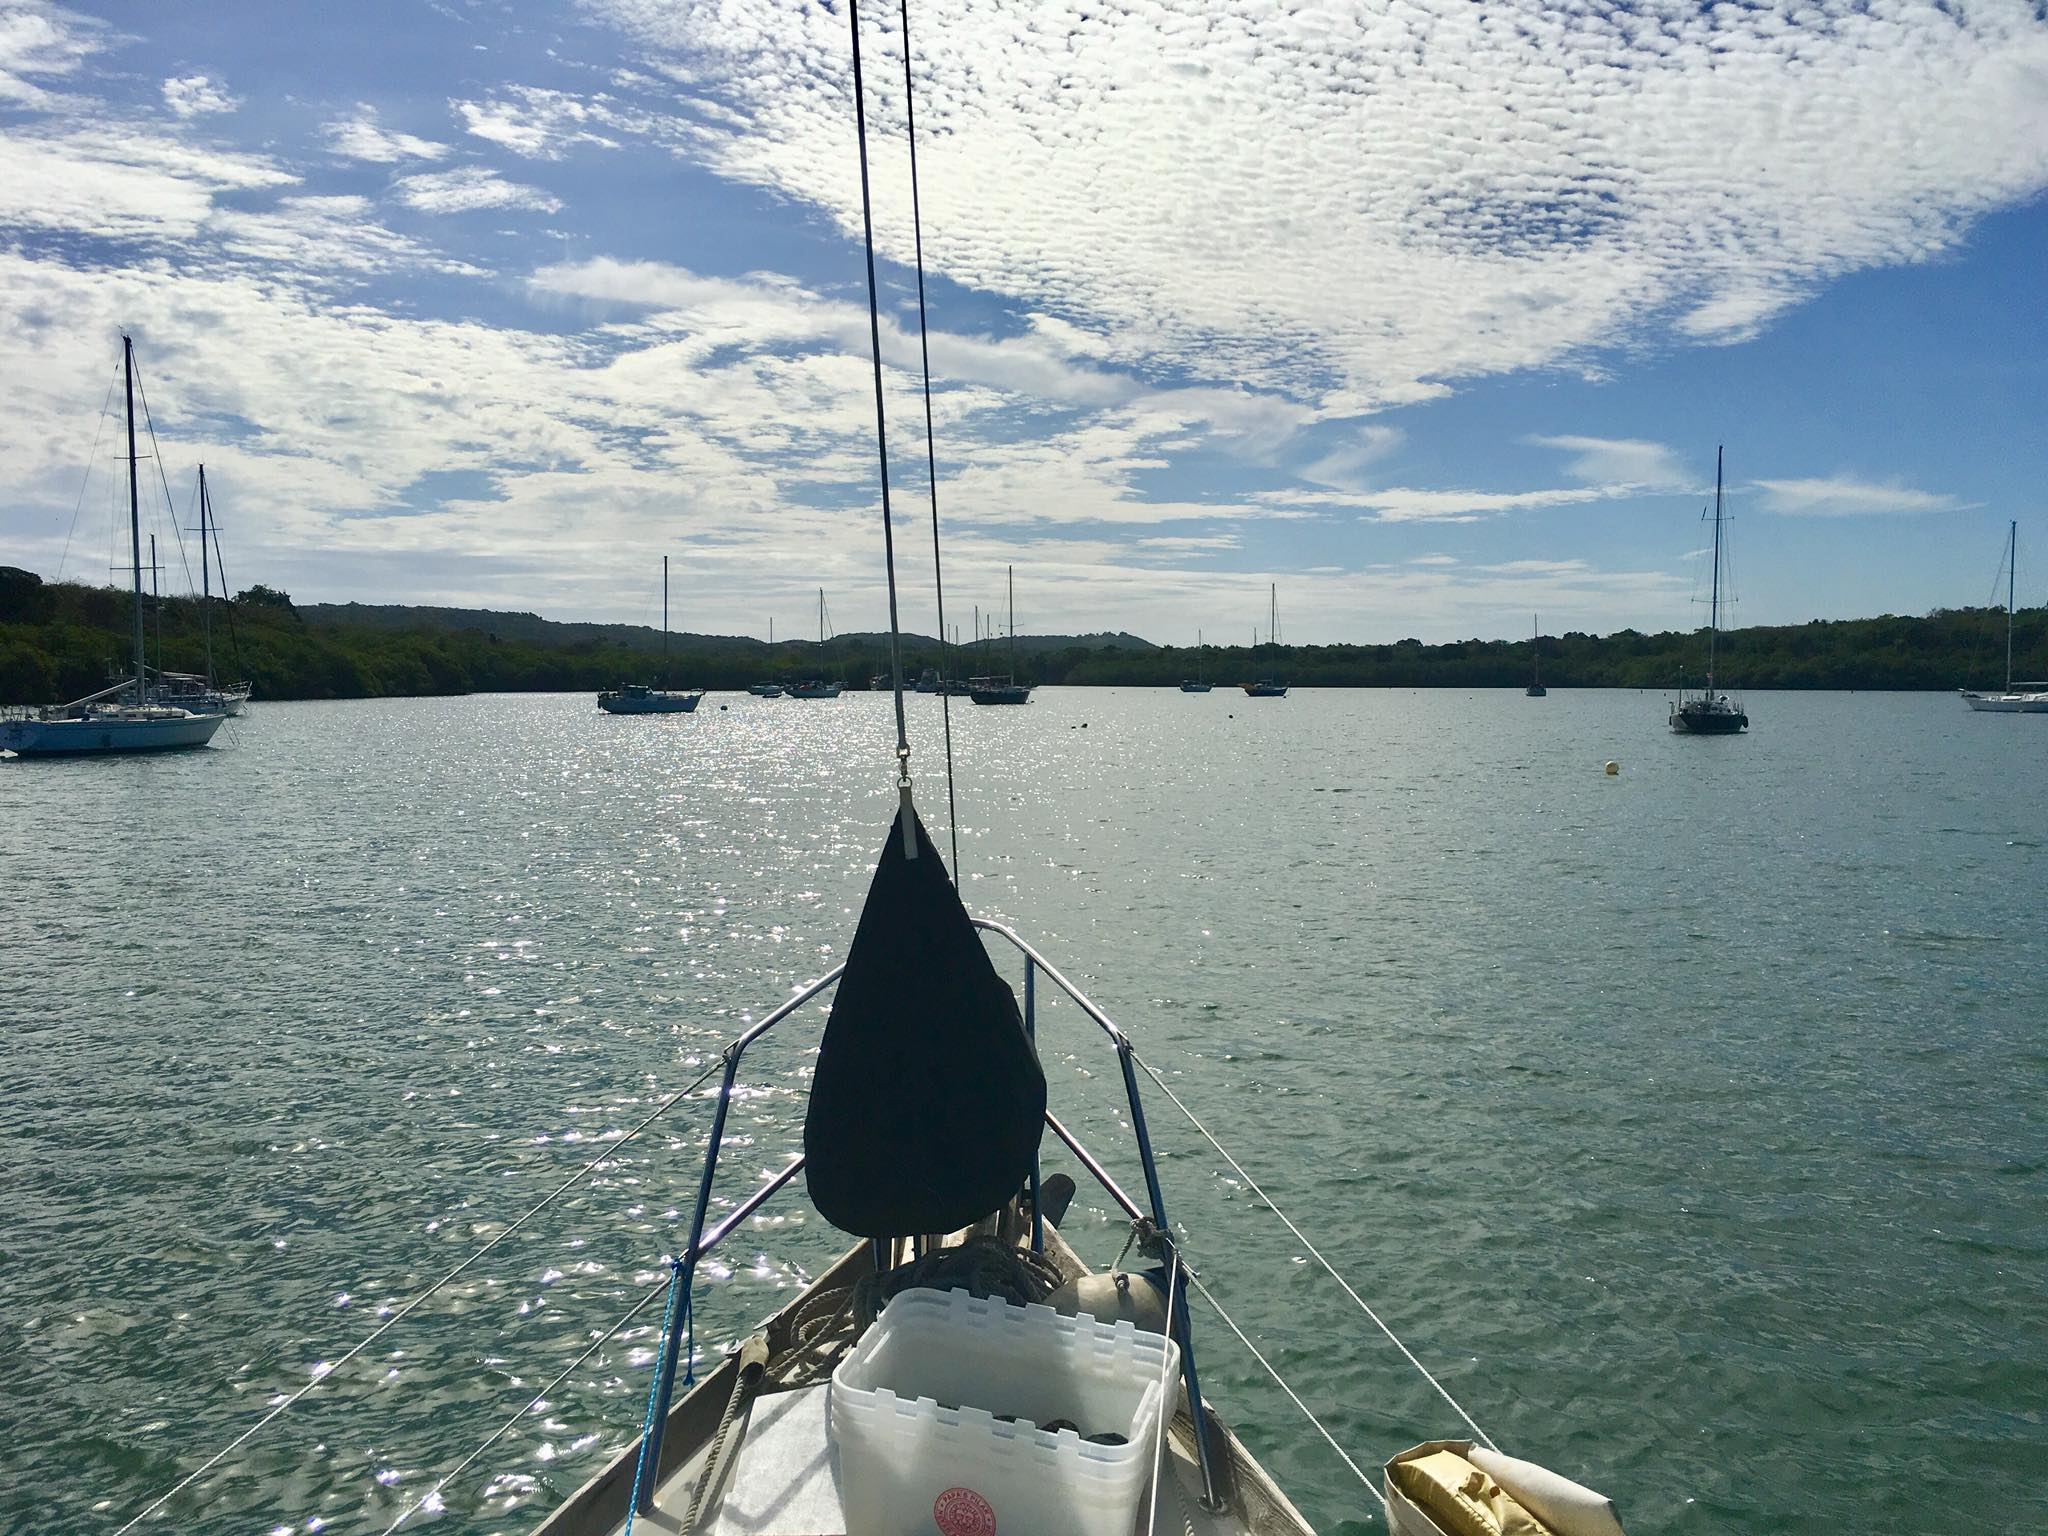 Liveaboard Life Day 89: From Sailing Life to Liveaboard Life in Luperon, Dominican Republic